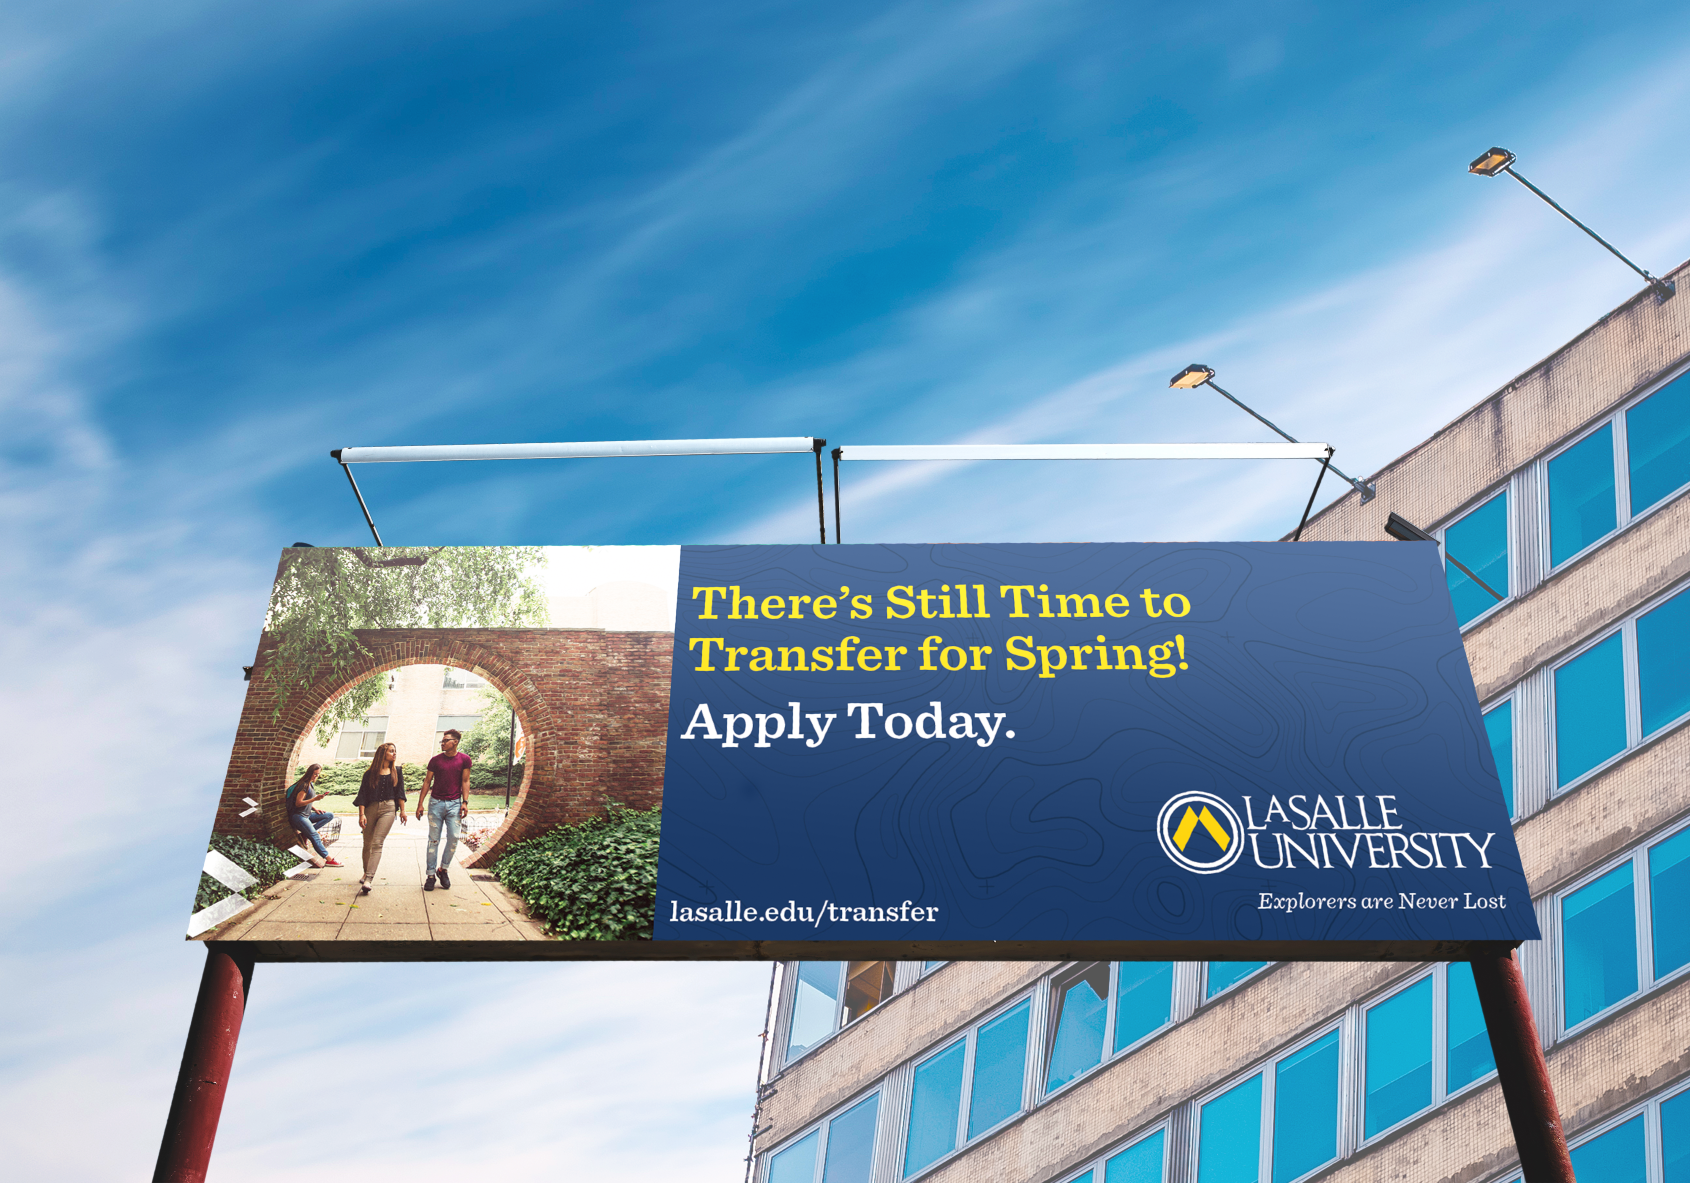 Transfer Admissions Billboard for La Salle University